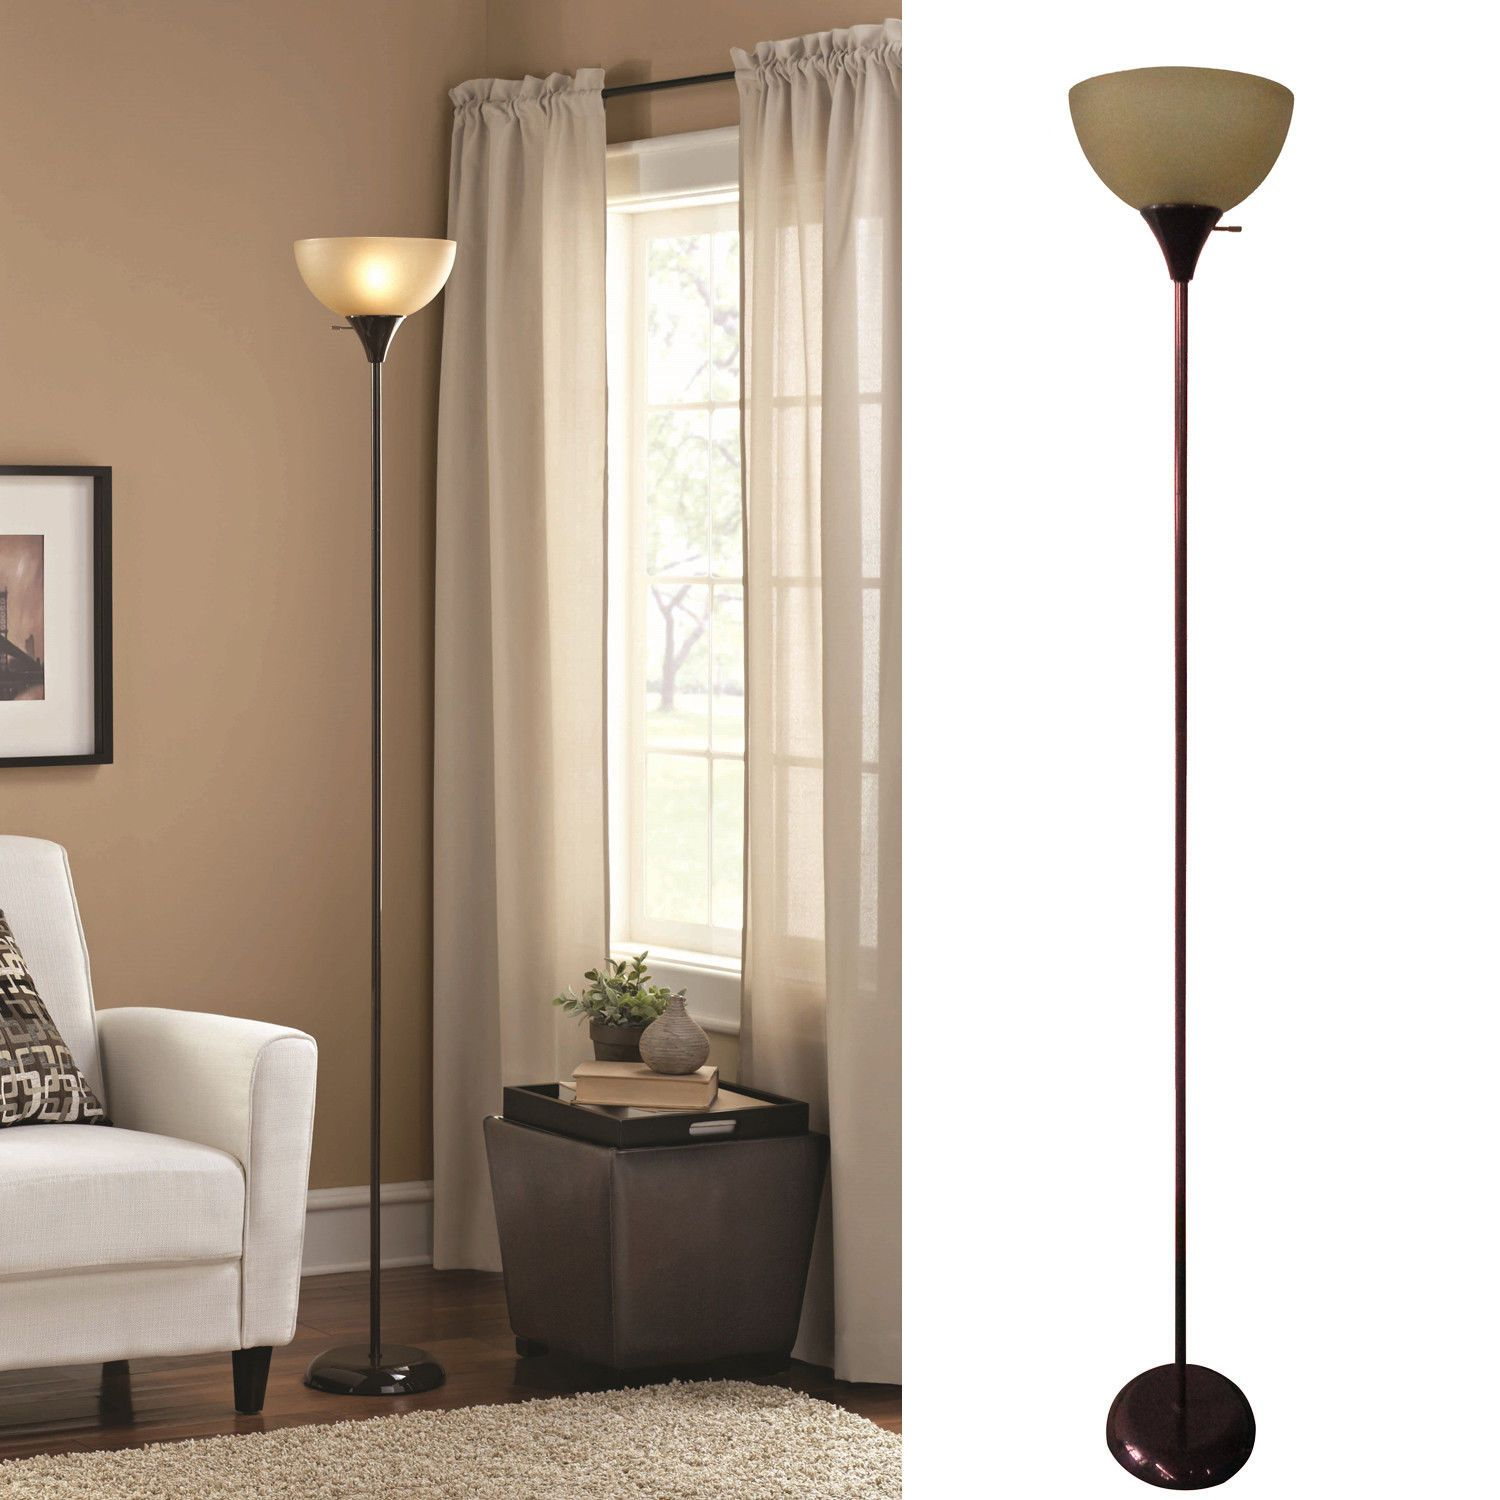 71 Tall Modern Floor Lamp Living Room Light Shade Brown Metal Stand Home Dec Living Room Floor Lamp Lighting Modern Floor Lamps Floor Lamps Living Room Modern